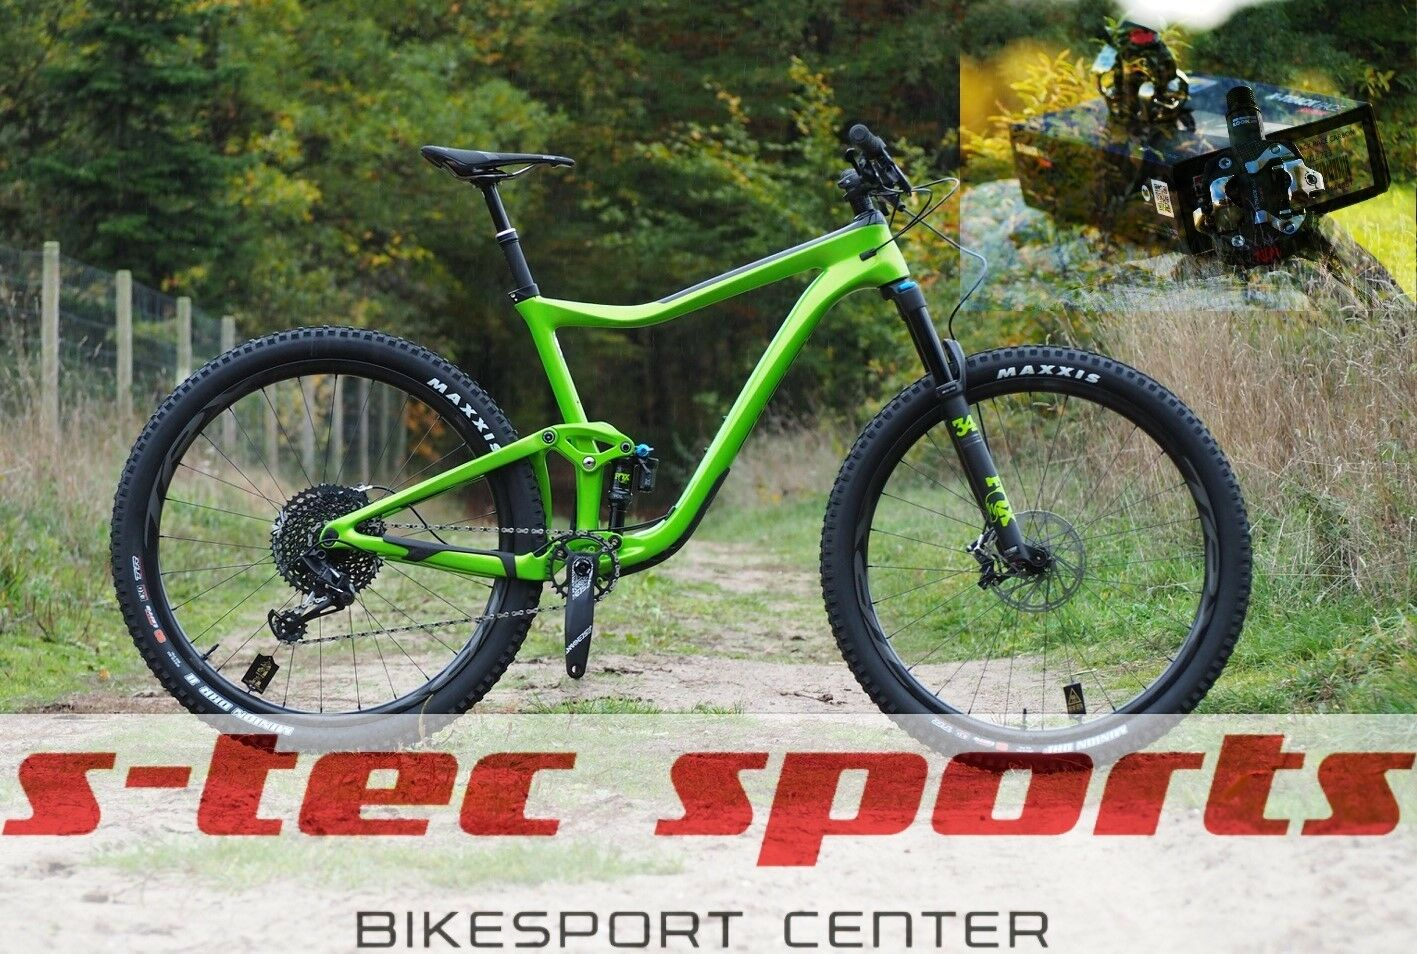 Look X-Track Race Carbon , Pedal-Tuning Set Giant Trance 2019 , Giant Bikes 2019